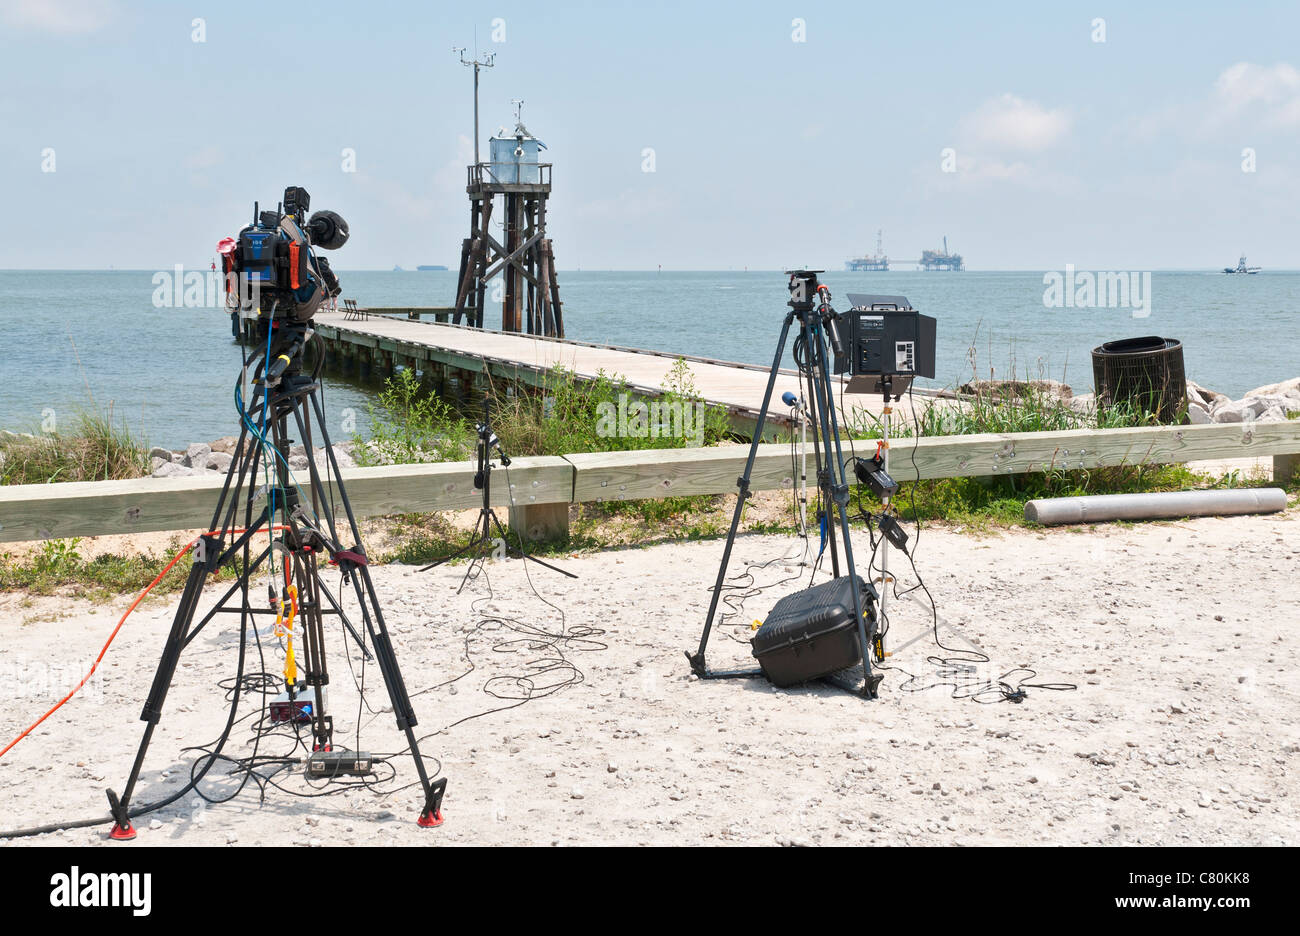 Alabama, Dauphin Island, TV News on location reporting on BP oil spill in Gulf of Mexico - Stock Image